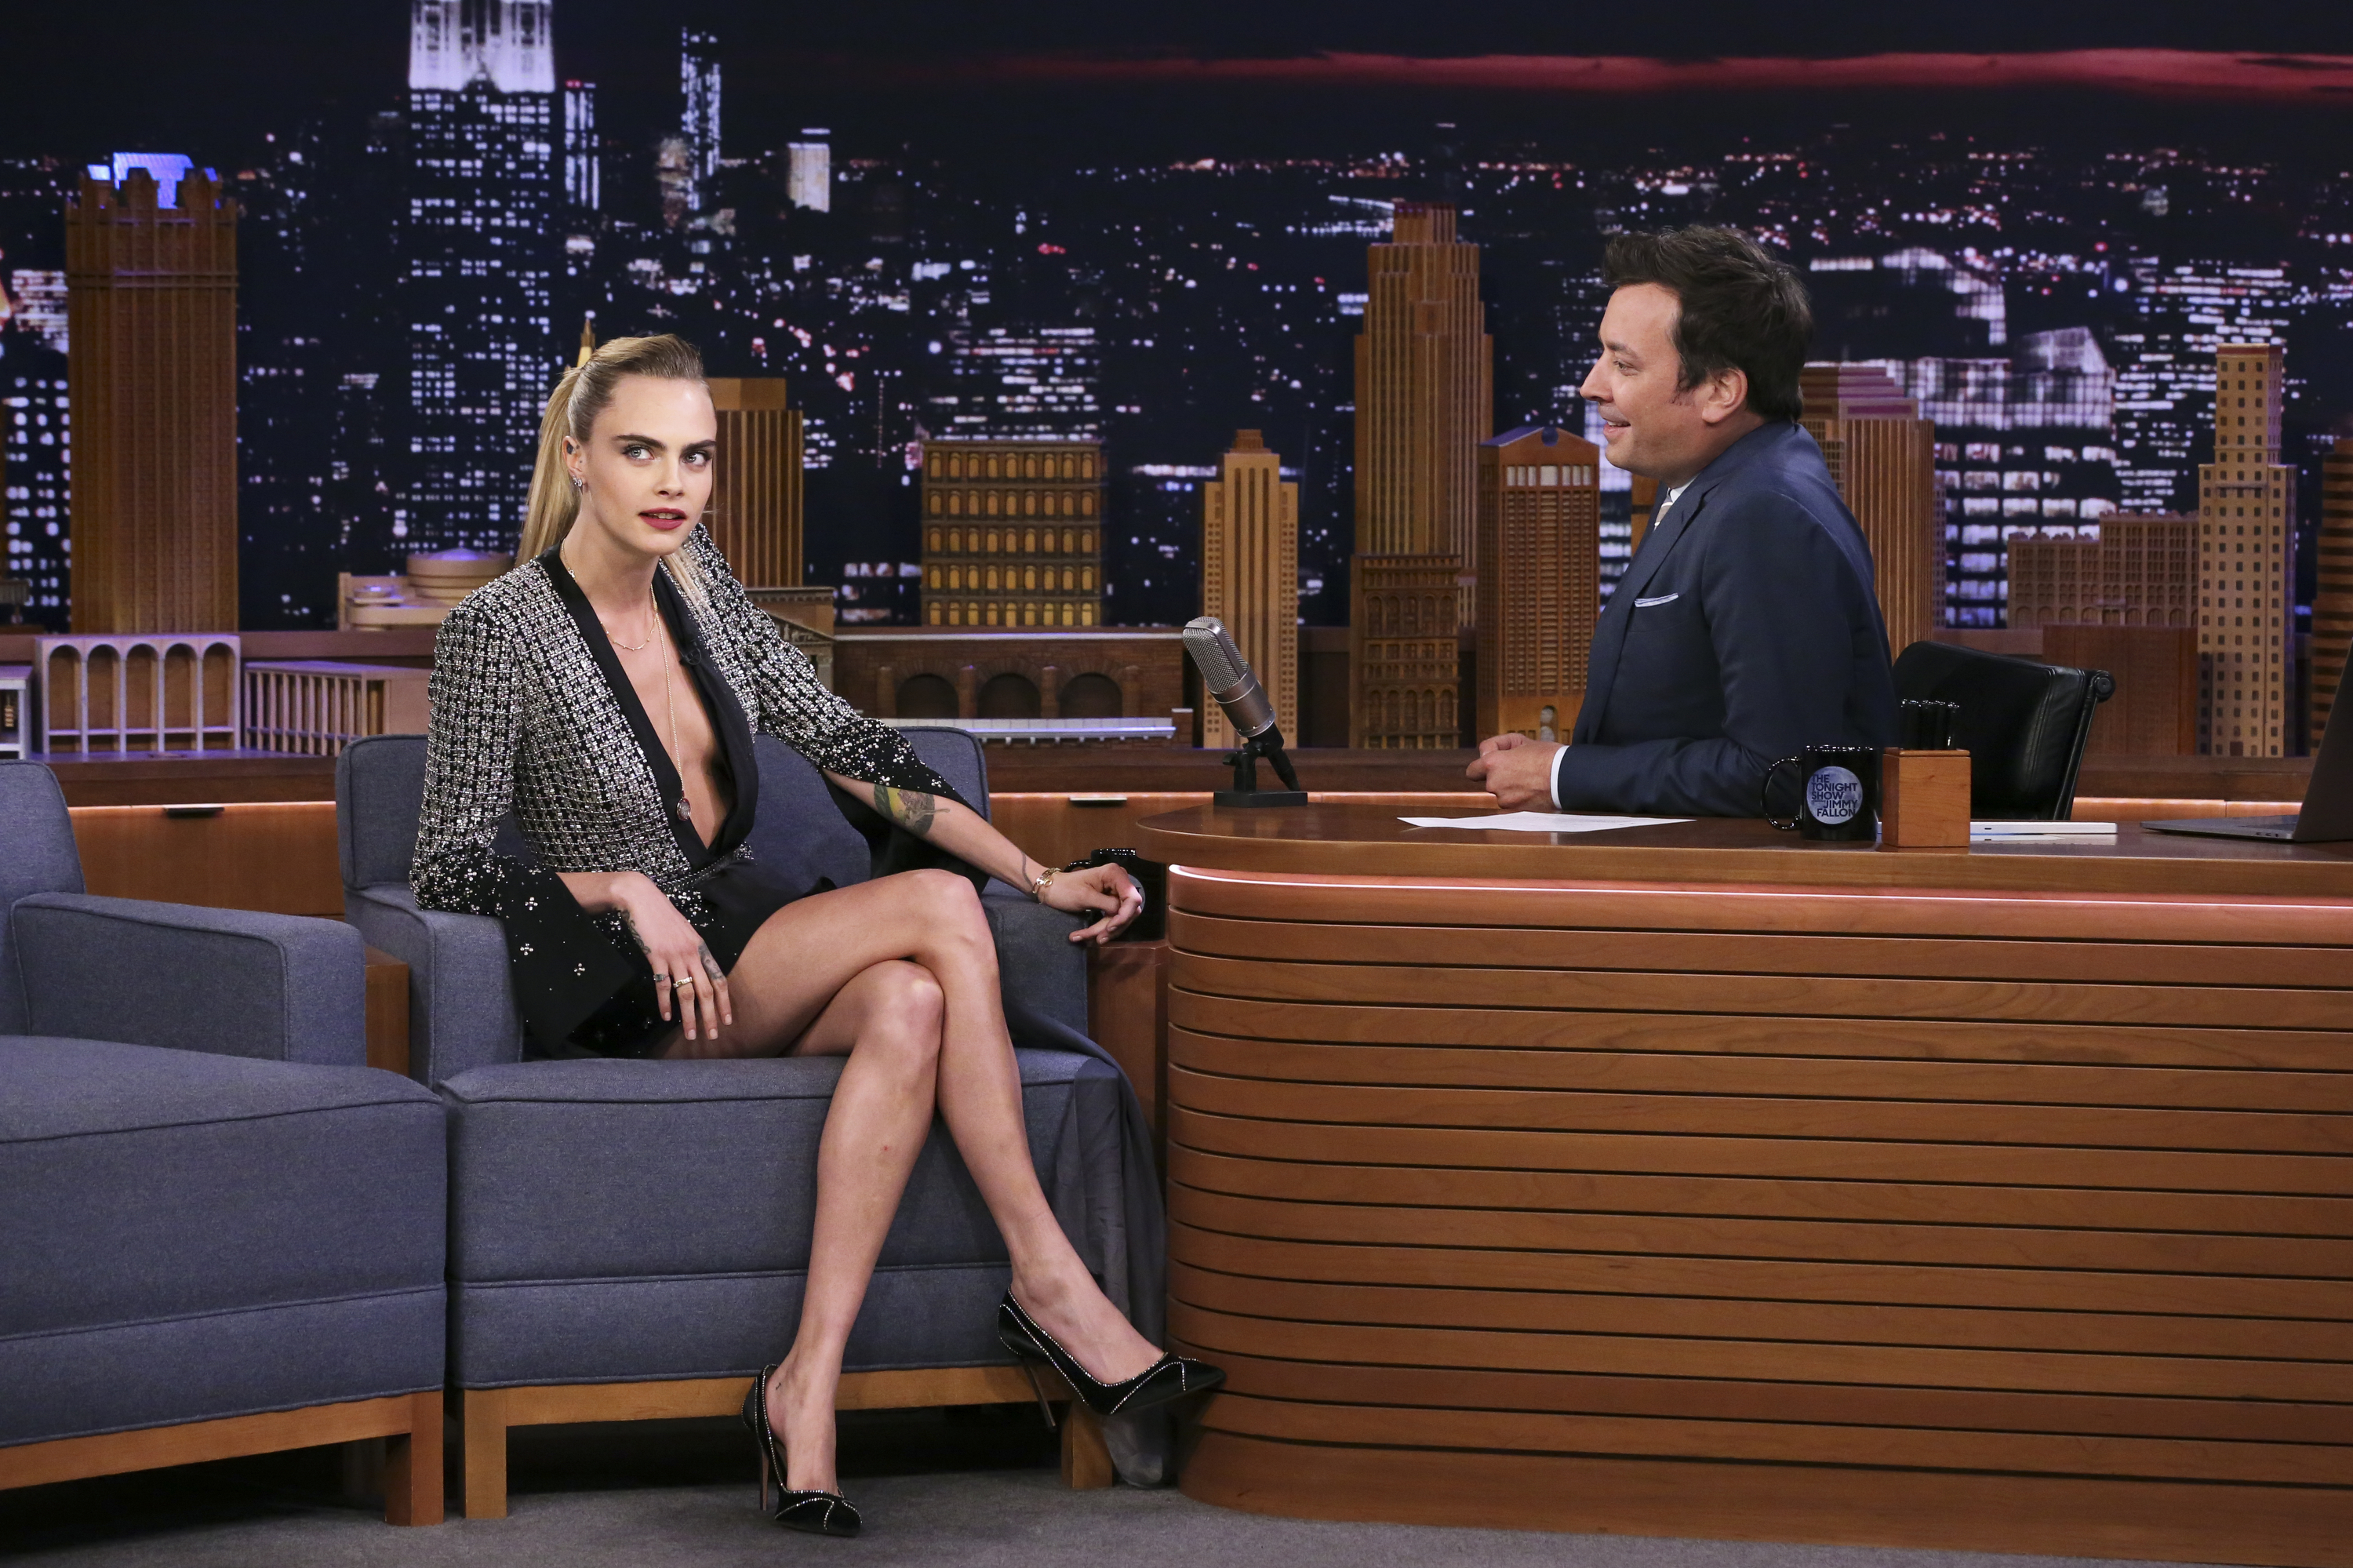 Cara Delevingne en The Tonight Show Starring Jimmy Fallon